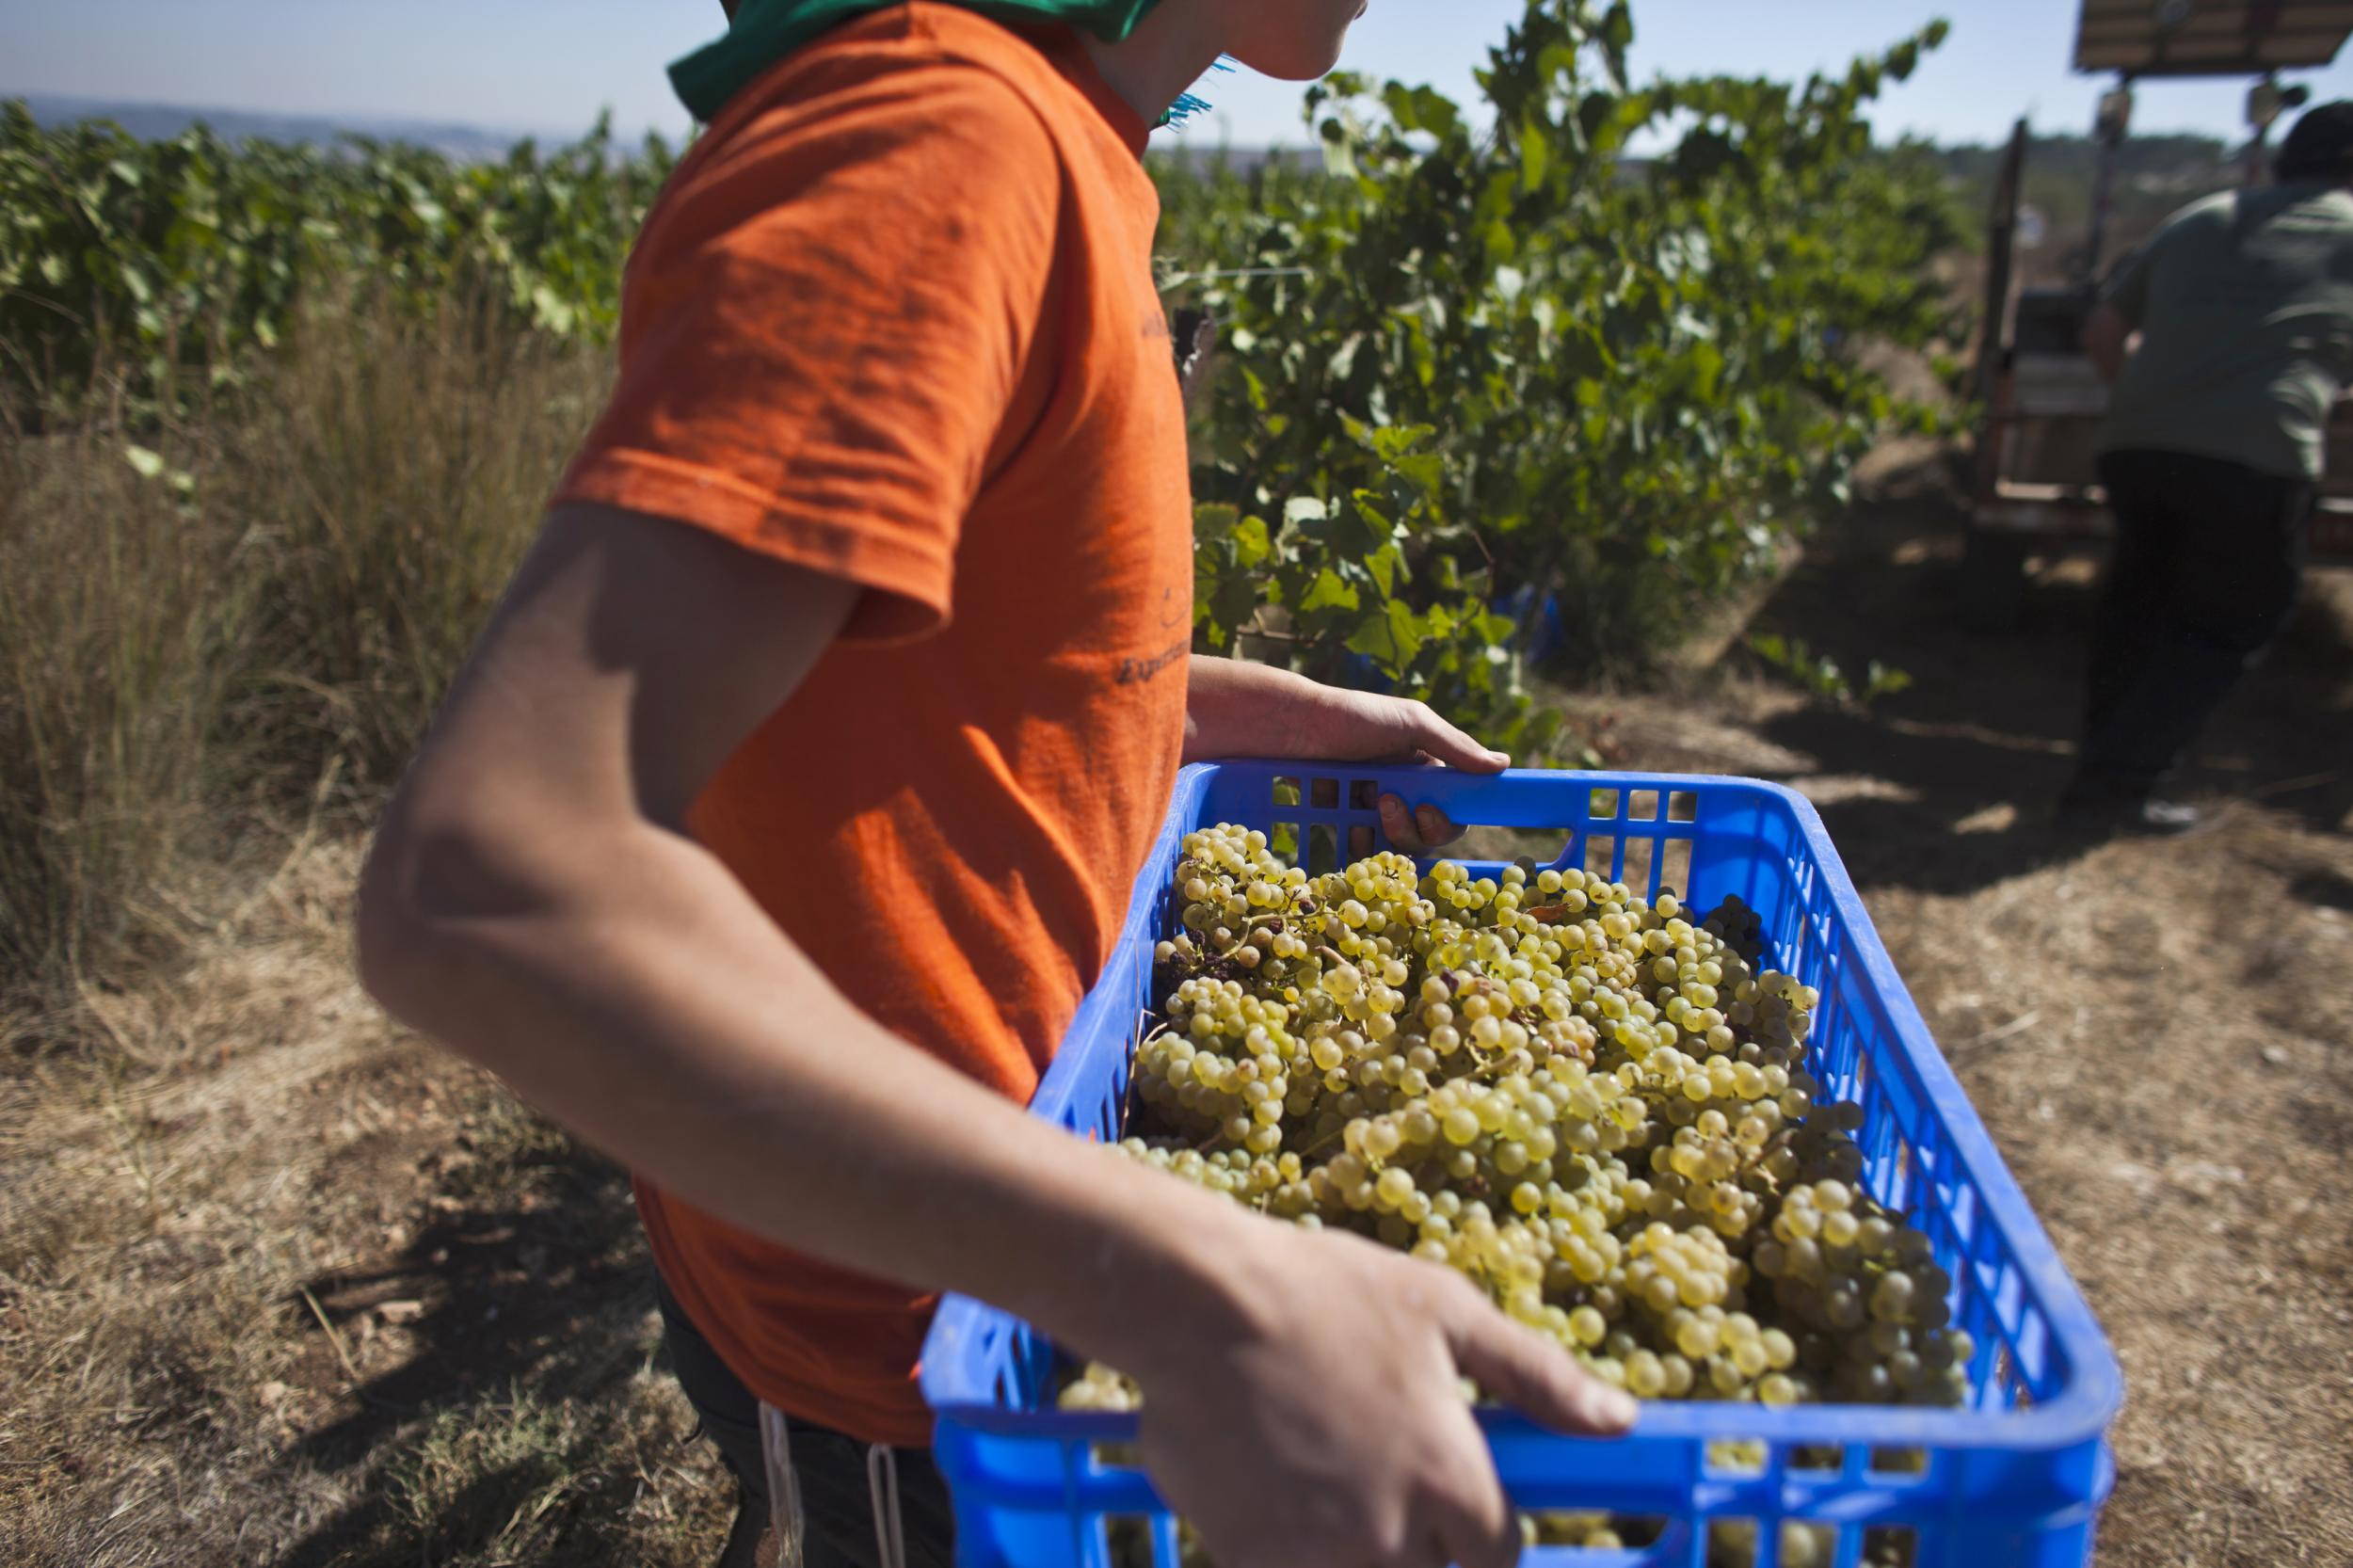 An EU decision over wine could have a big impact on the Israel-Palestinian conflict